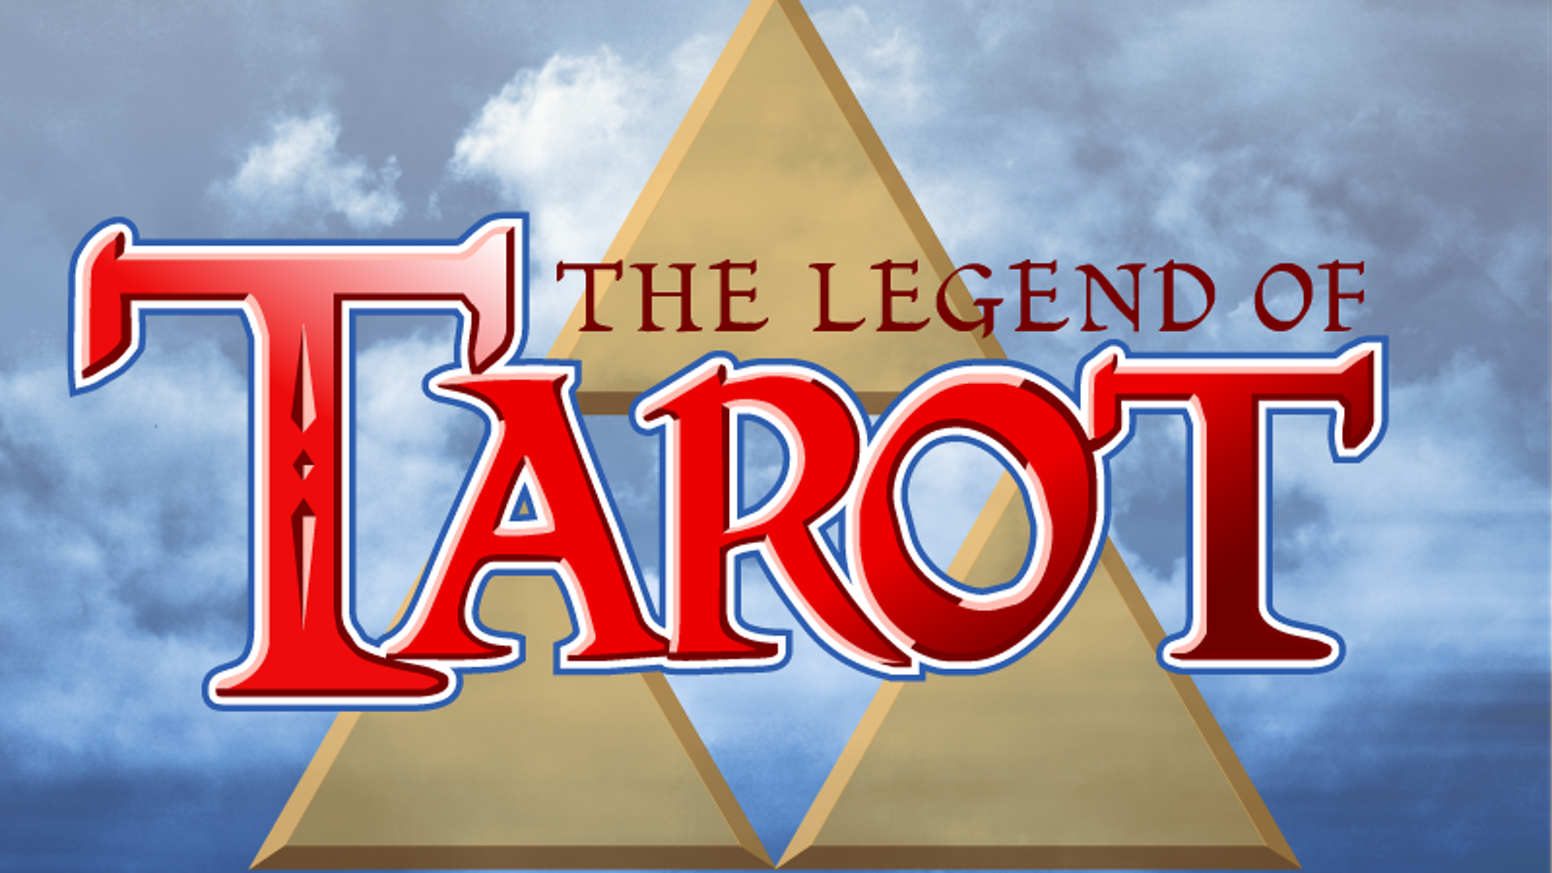 The Legend of Tarot is a 78-card divination deck based on a popular video game series full of magic, puzzles, and mystery.